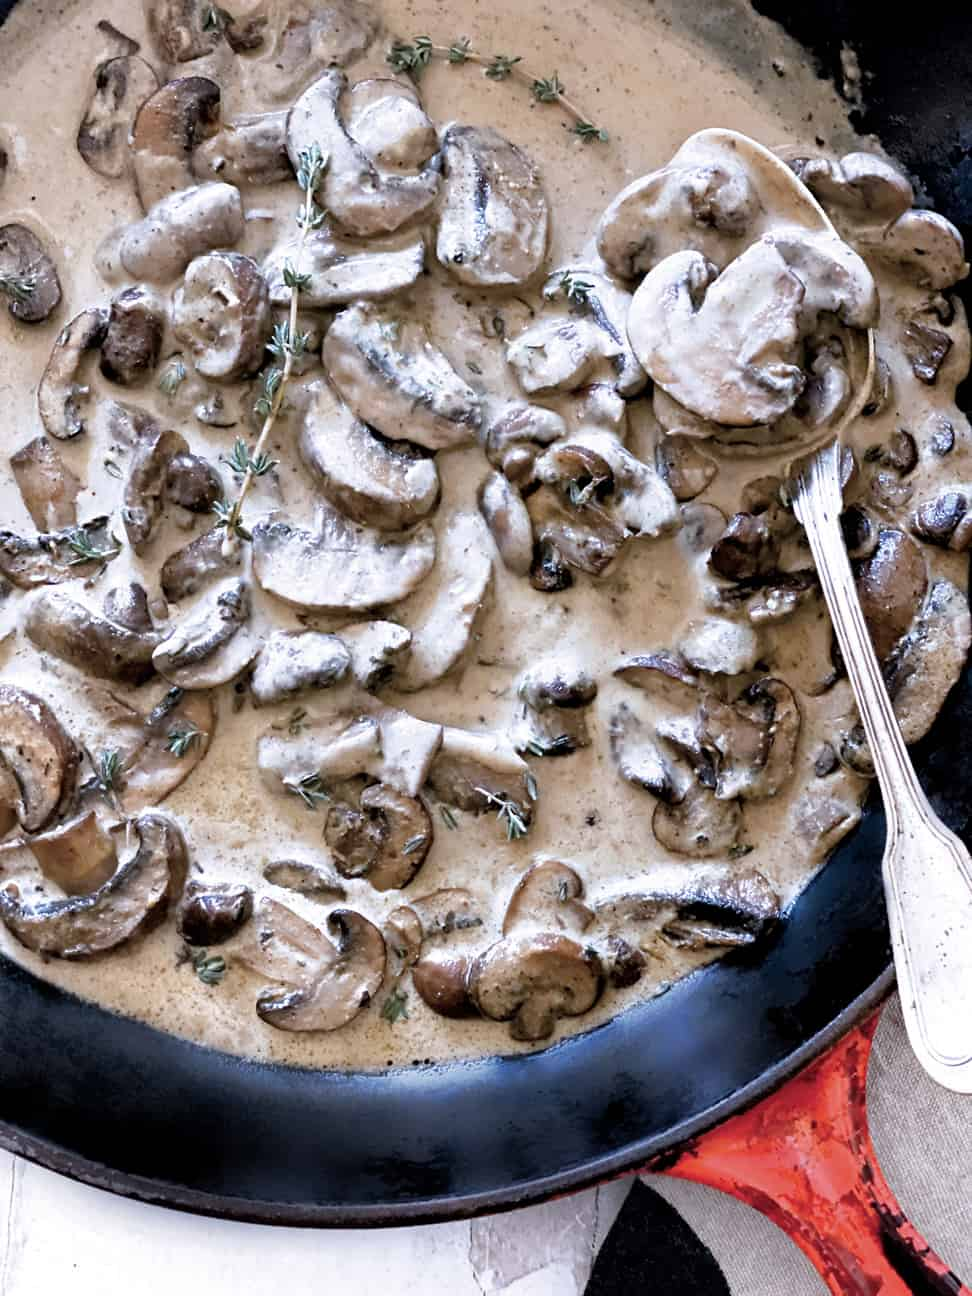 A red pan with mushroom sauce and a spoon on a napkin.